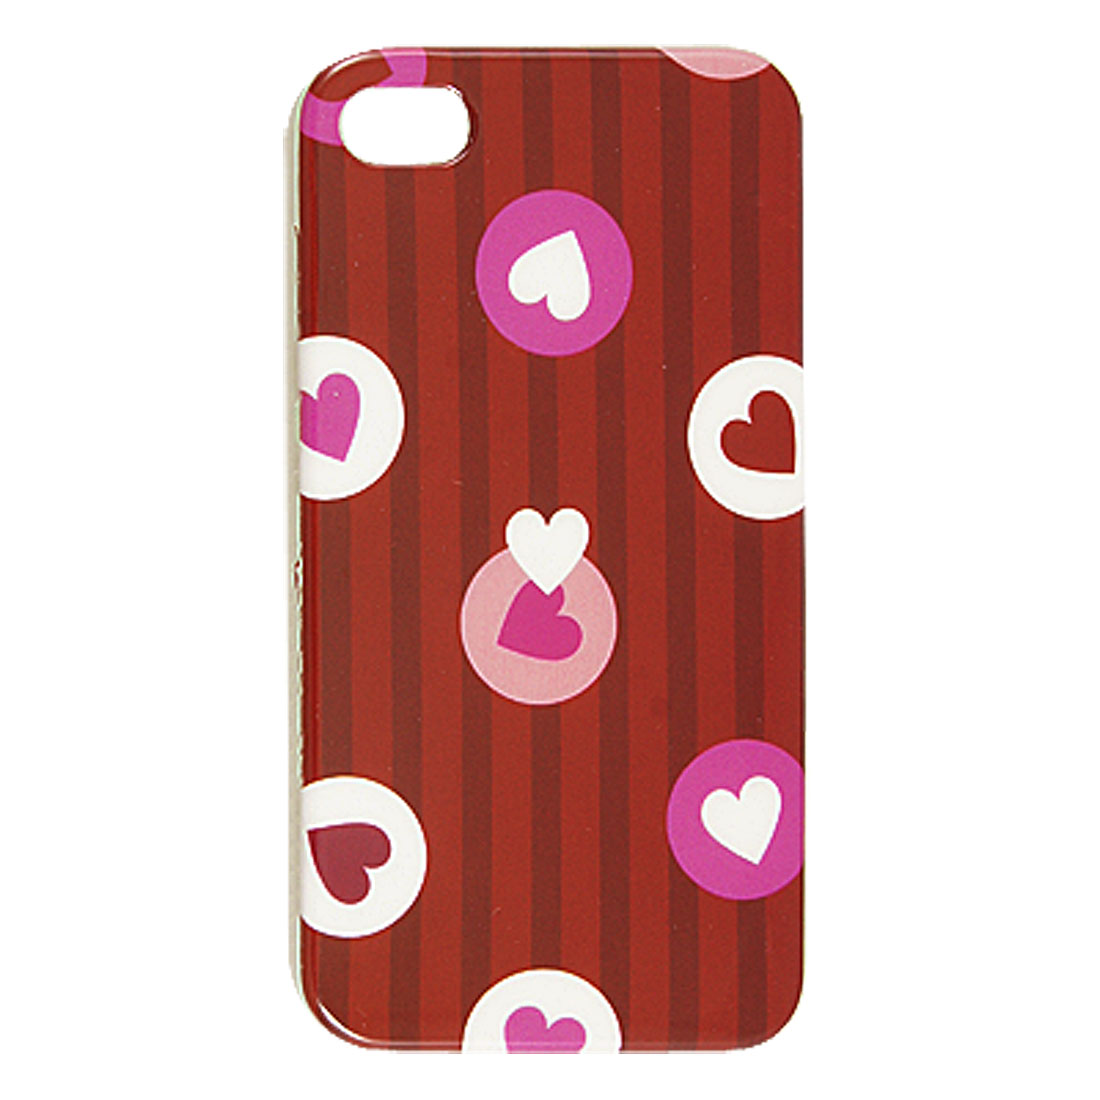 Heart Shape Pattern Red Hard Plastic IMD Back Case for iPhone 4 4G 4S